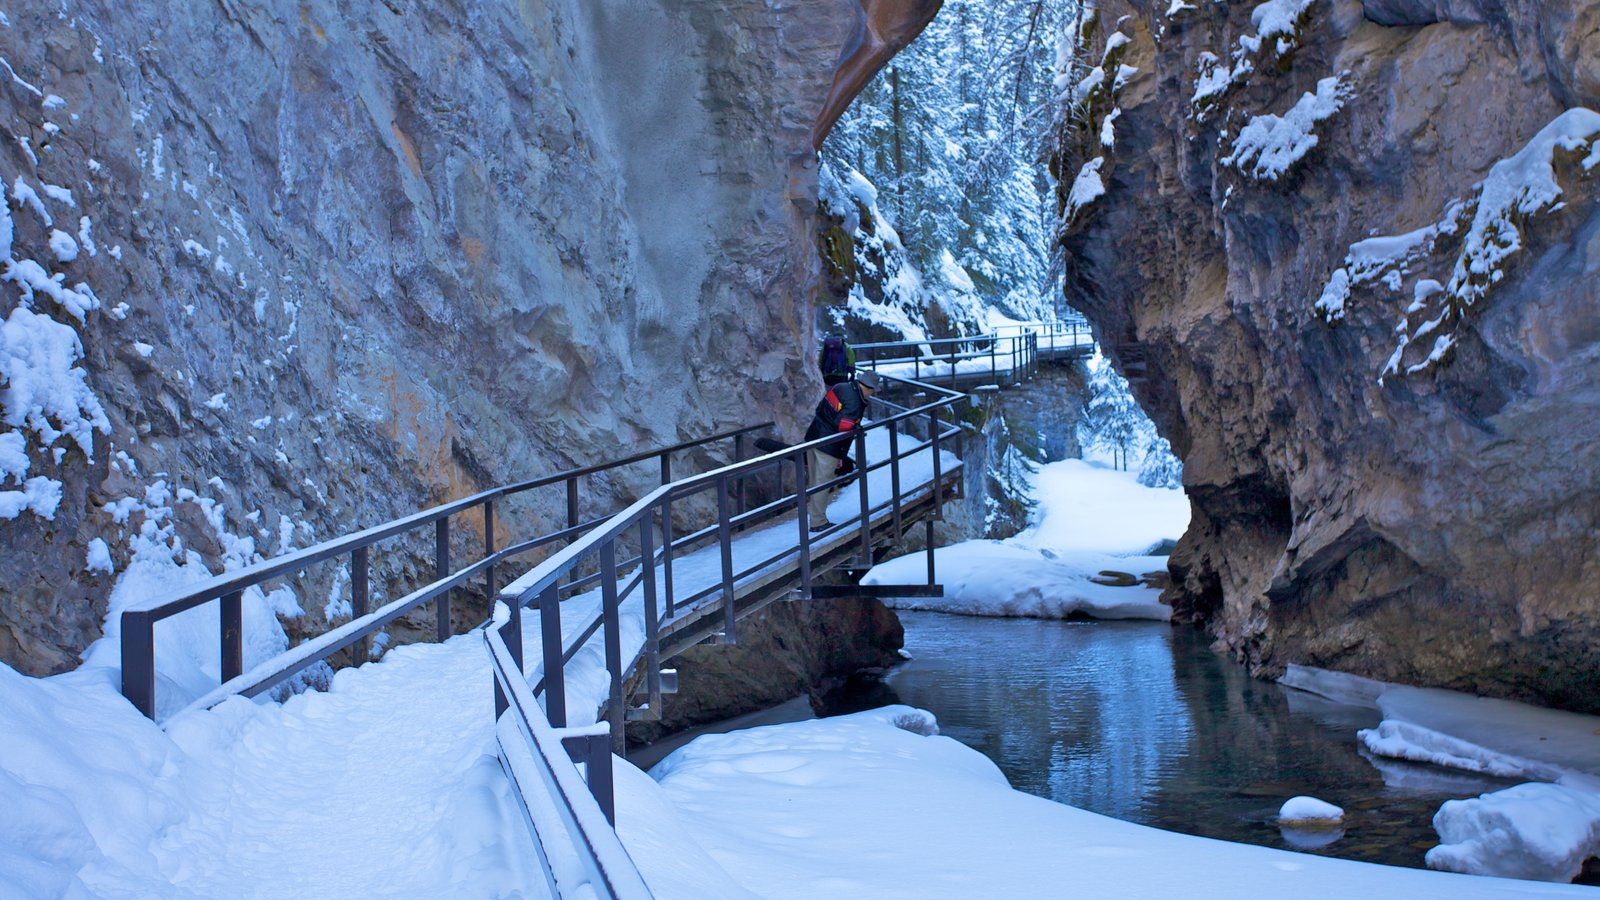 Johnston Canyon which includes hiking or walking, a gorge or canyon and a river or creek